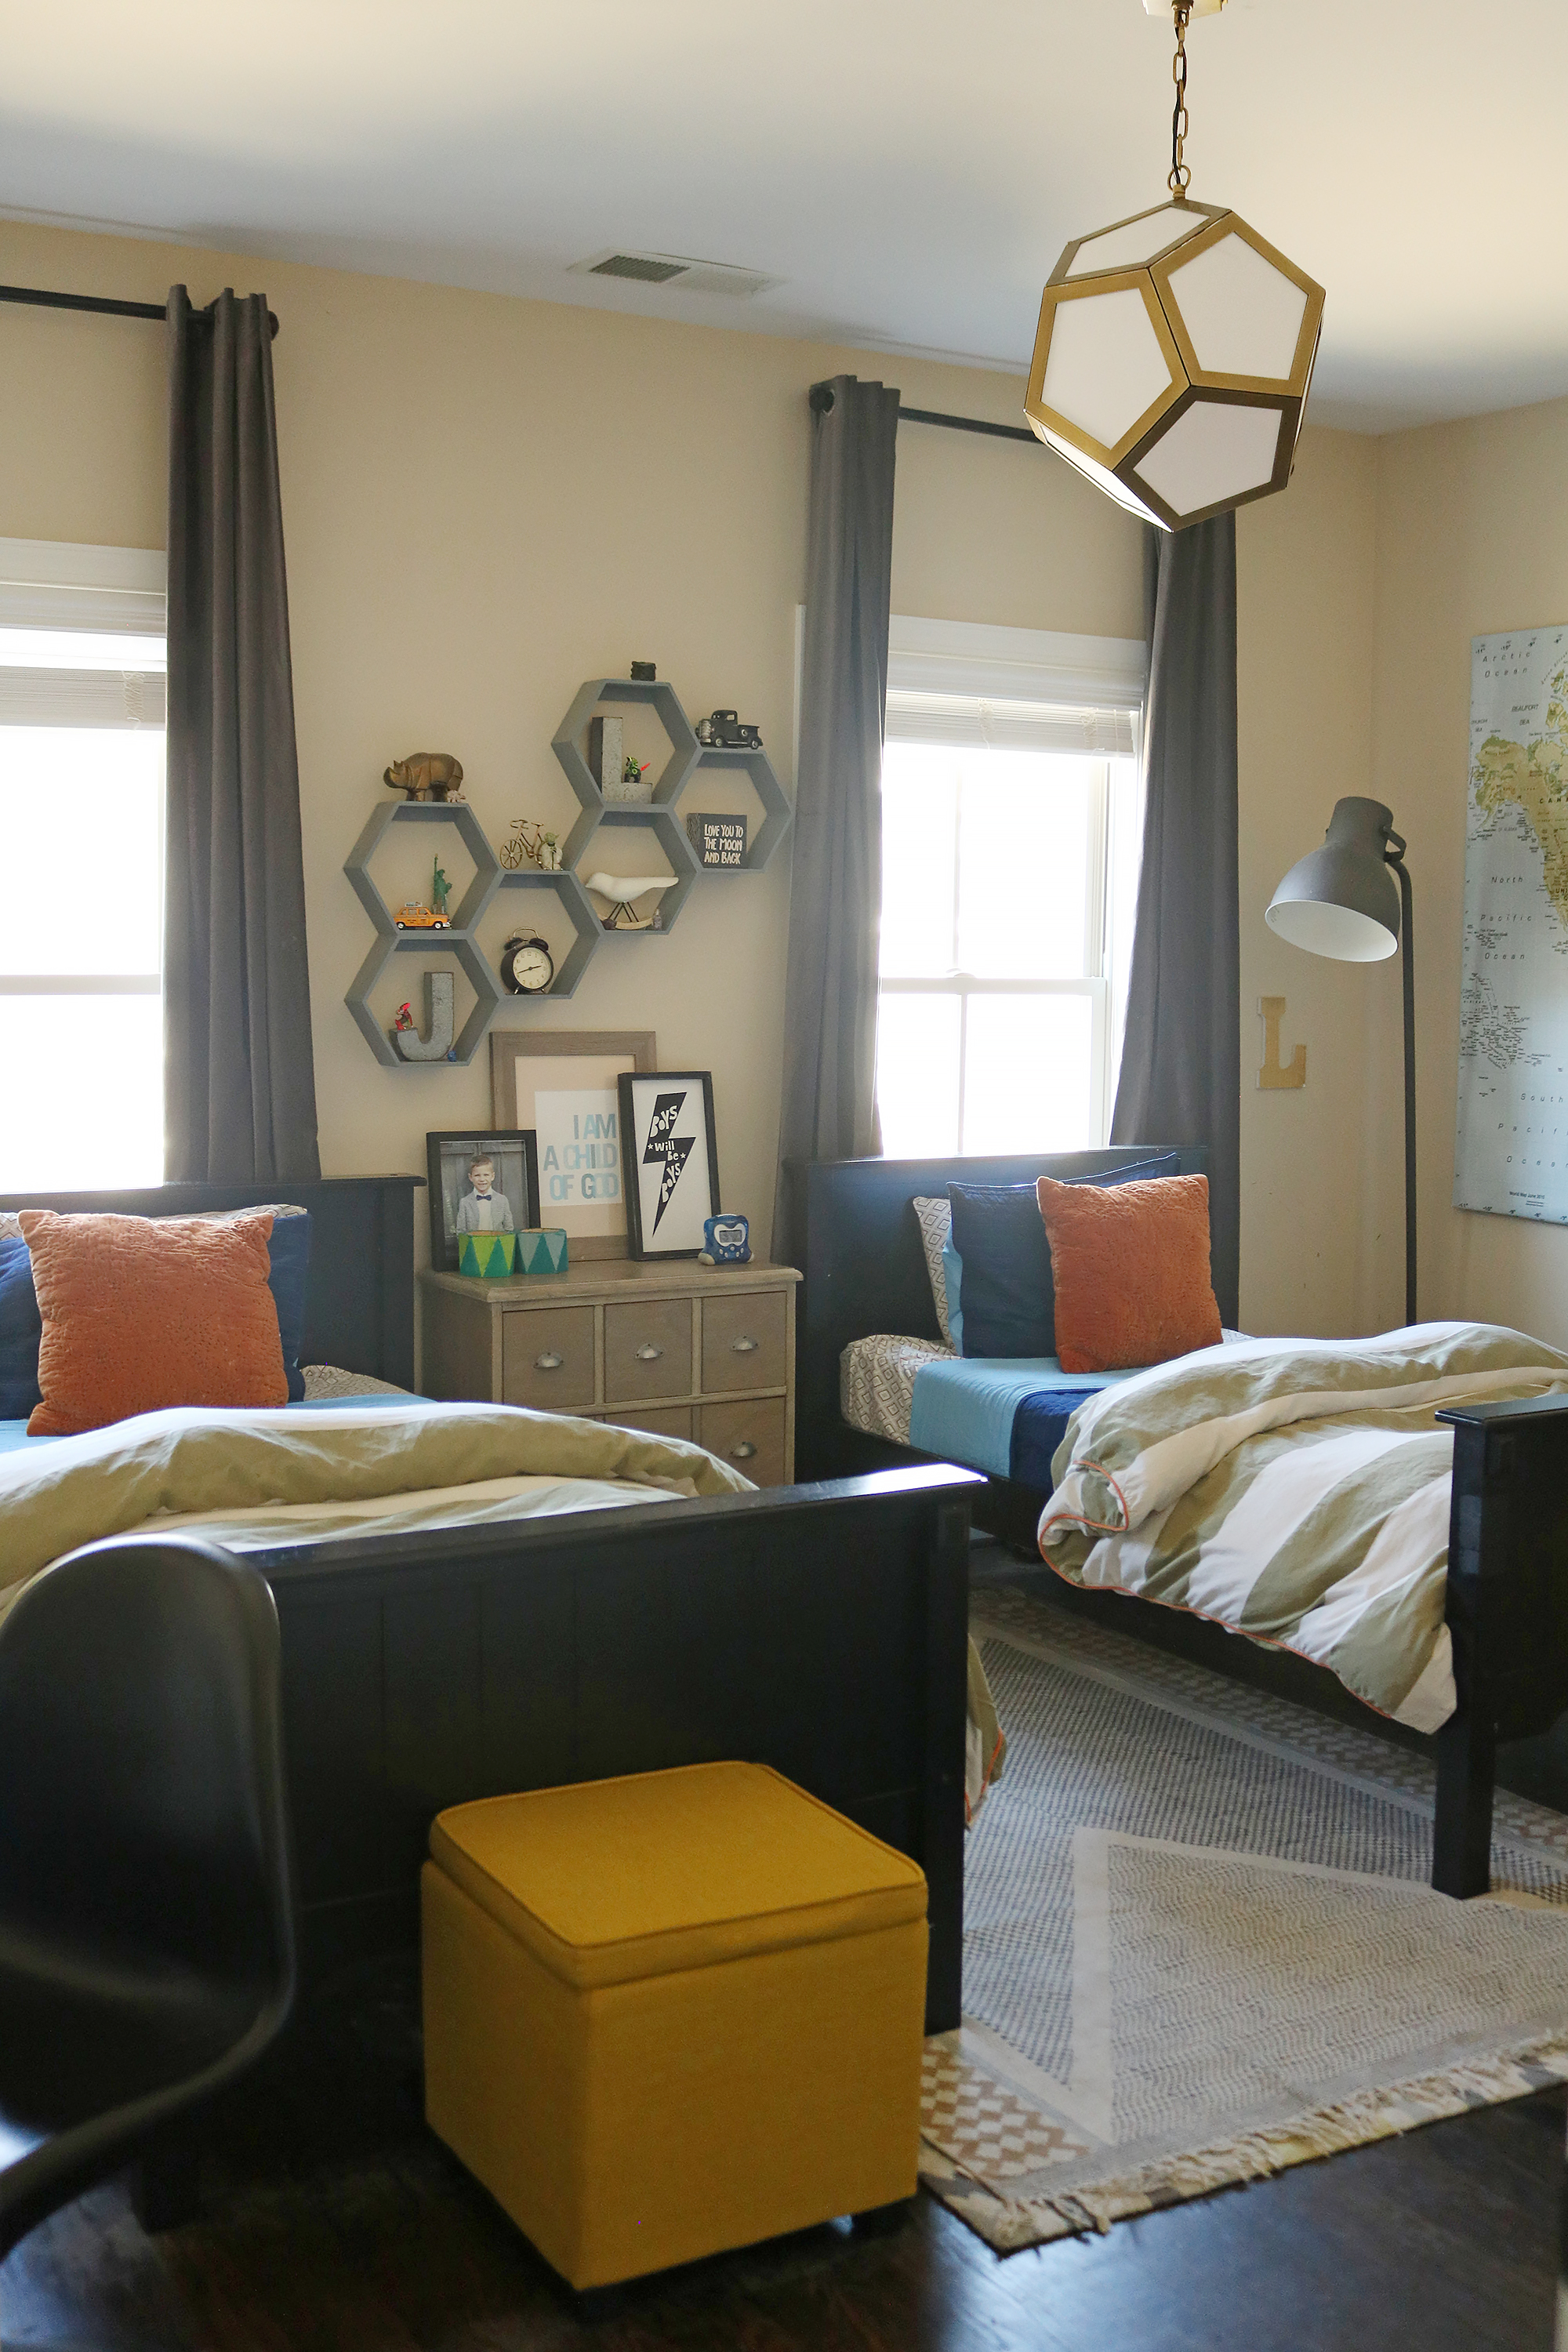 Maximize every space in a Shared Boy's Bedroom with budget-friendly ideas || Darling Darleen